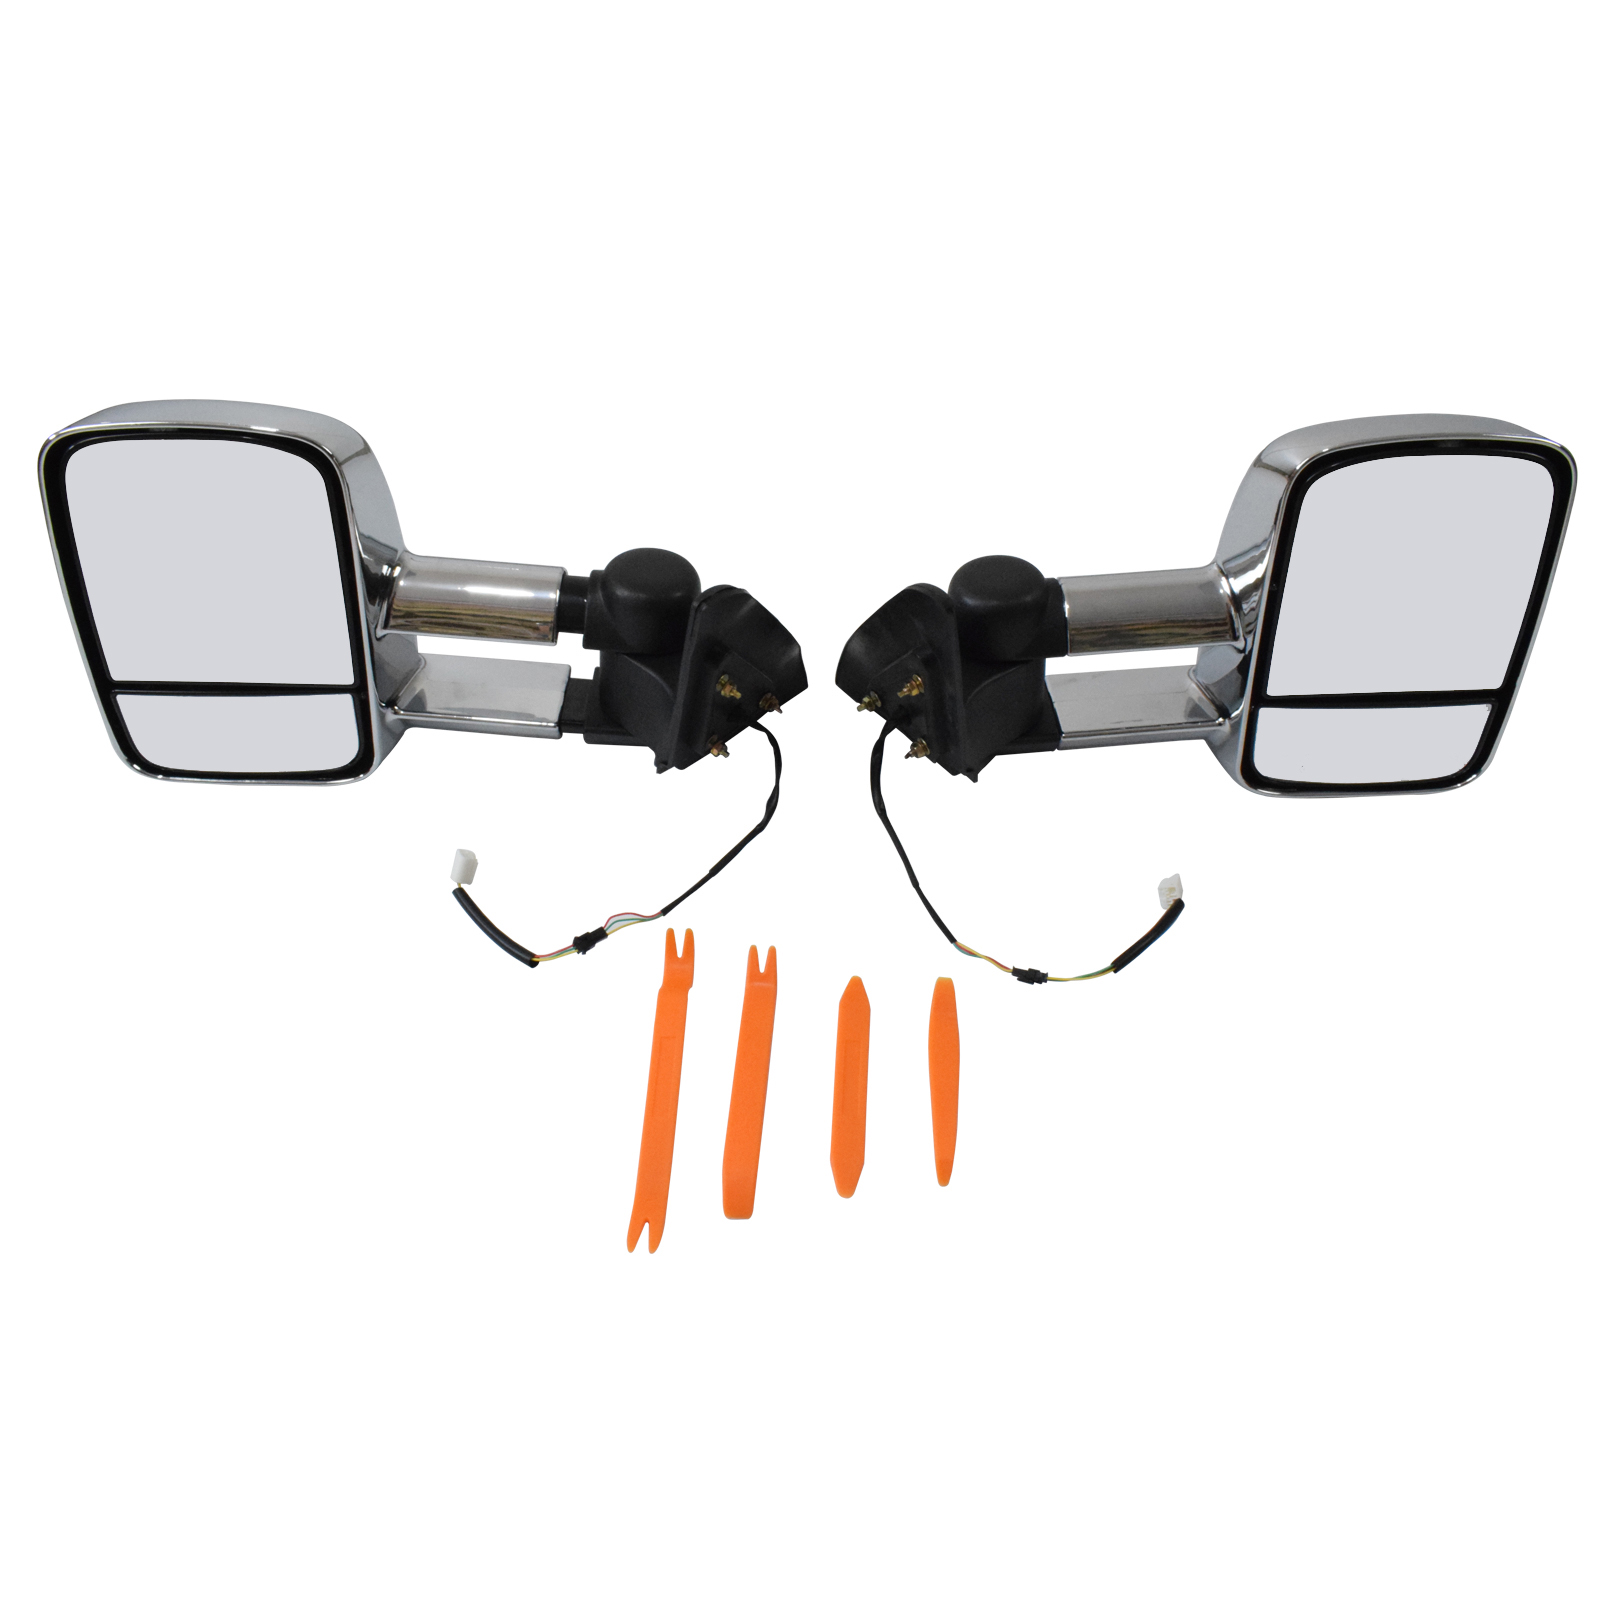 fit for Toyota Prado 120 Series 03-09 Towing Extendable Mirror L&R Set image